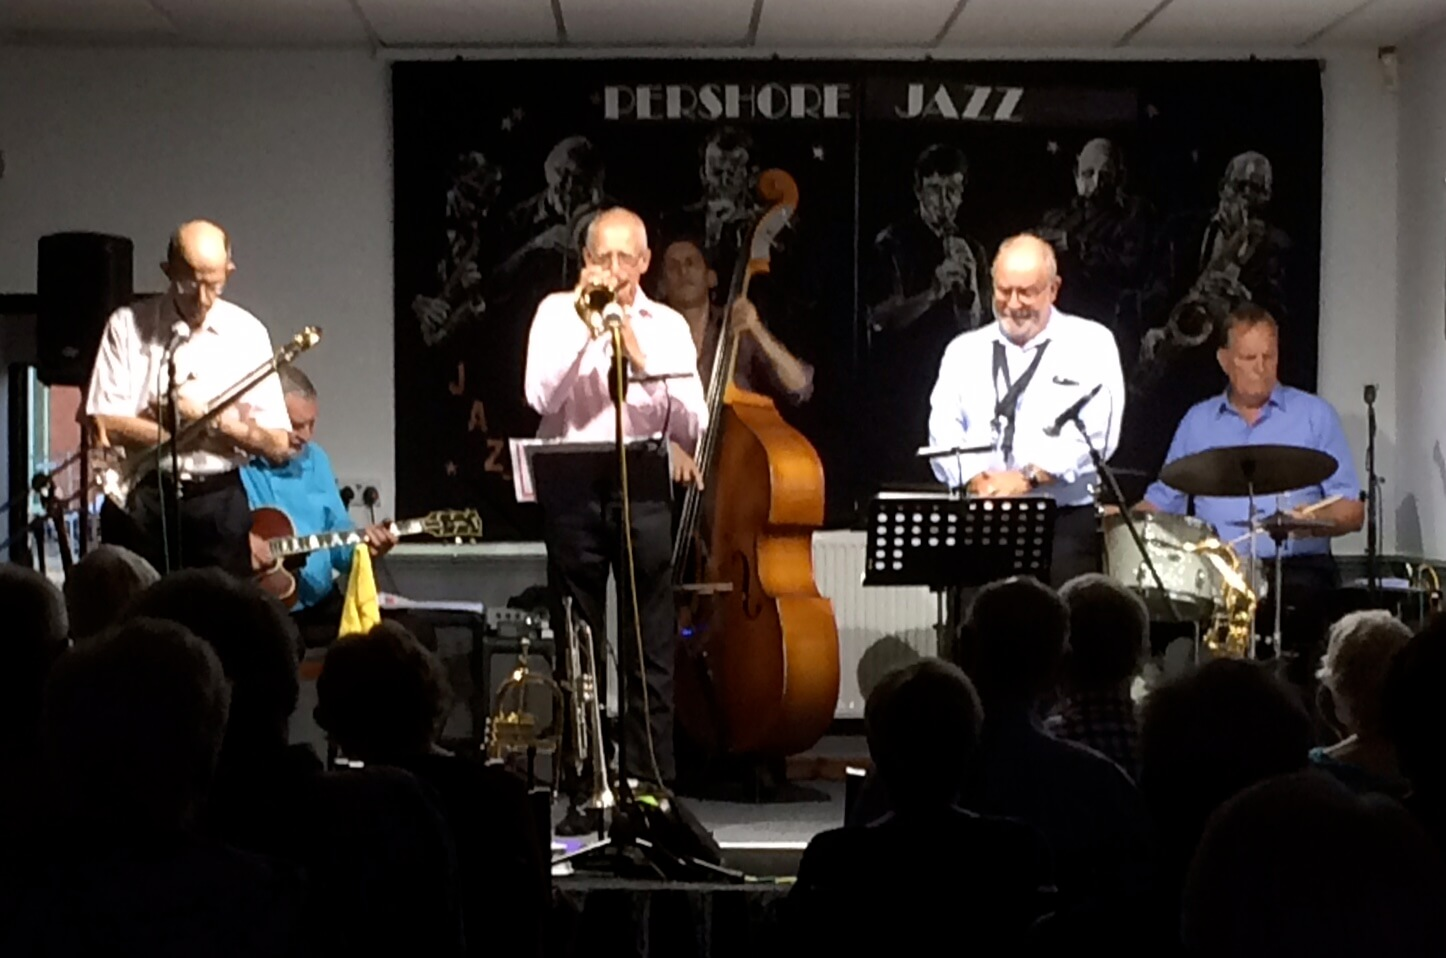 Pershore Jazz Club - Graham Smith's Jazz Allsorts